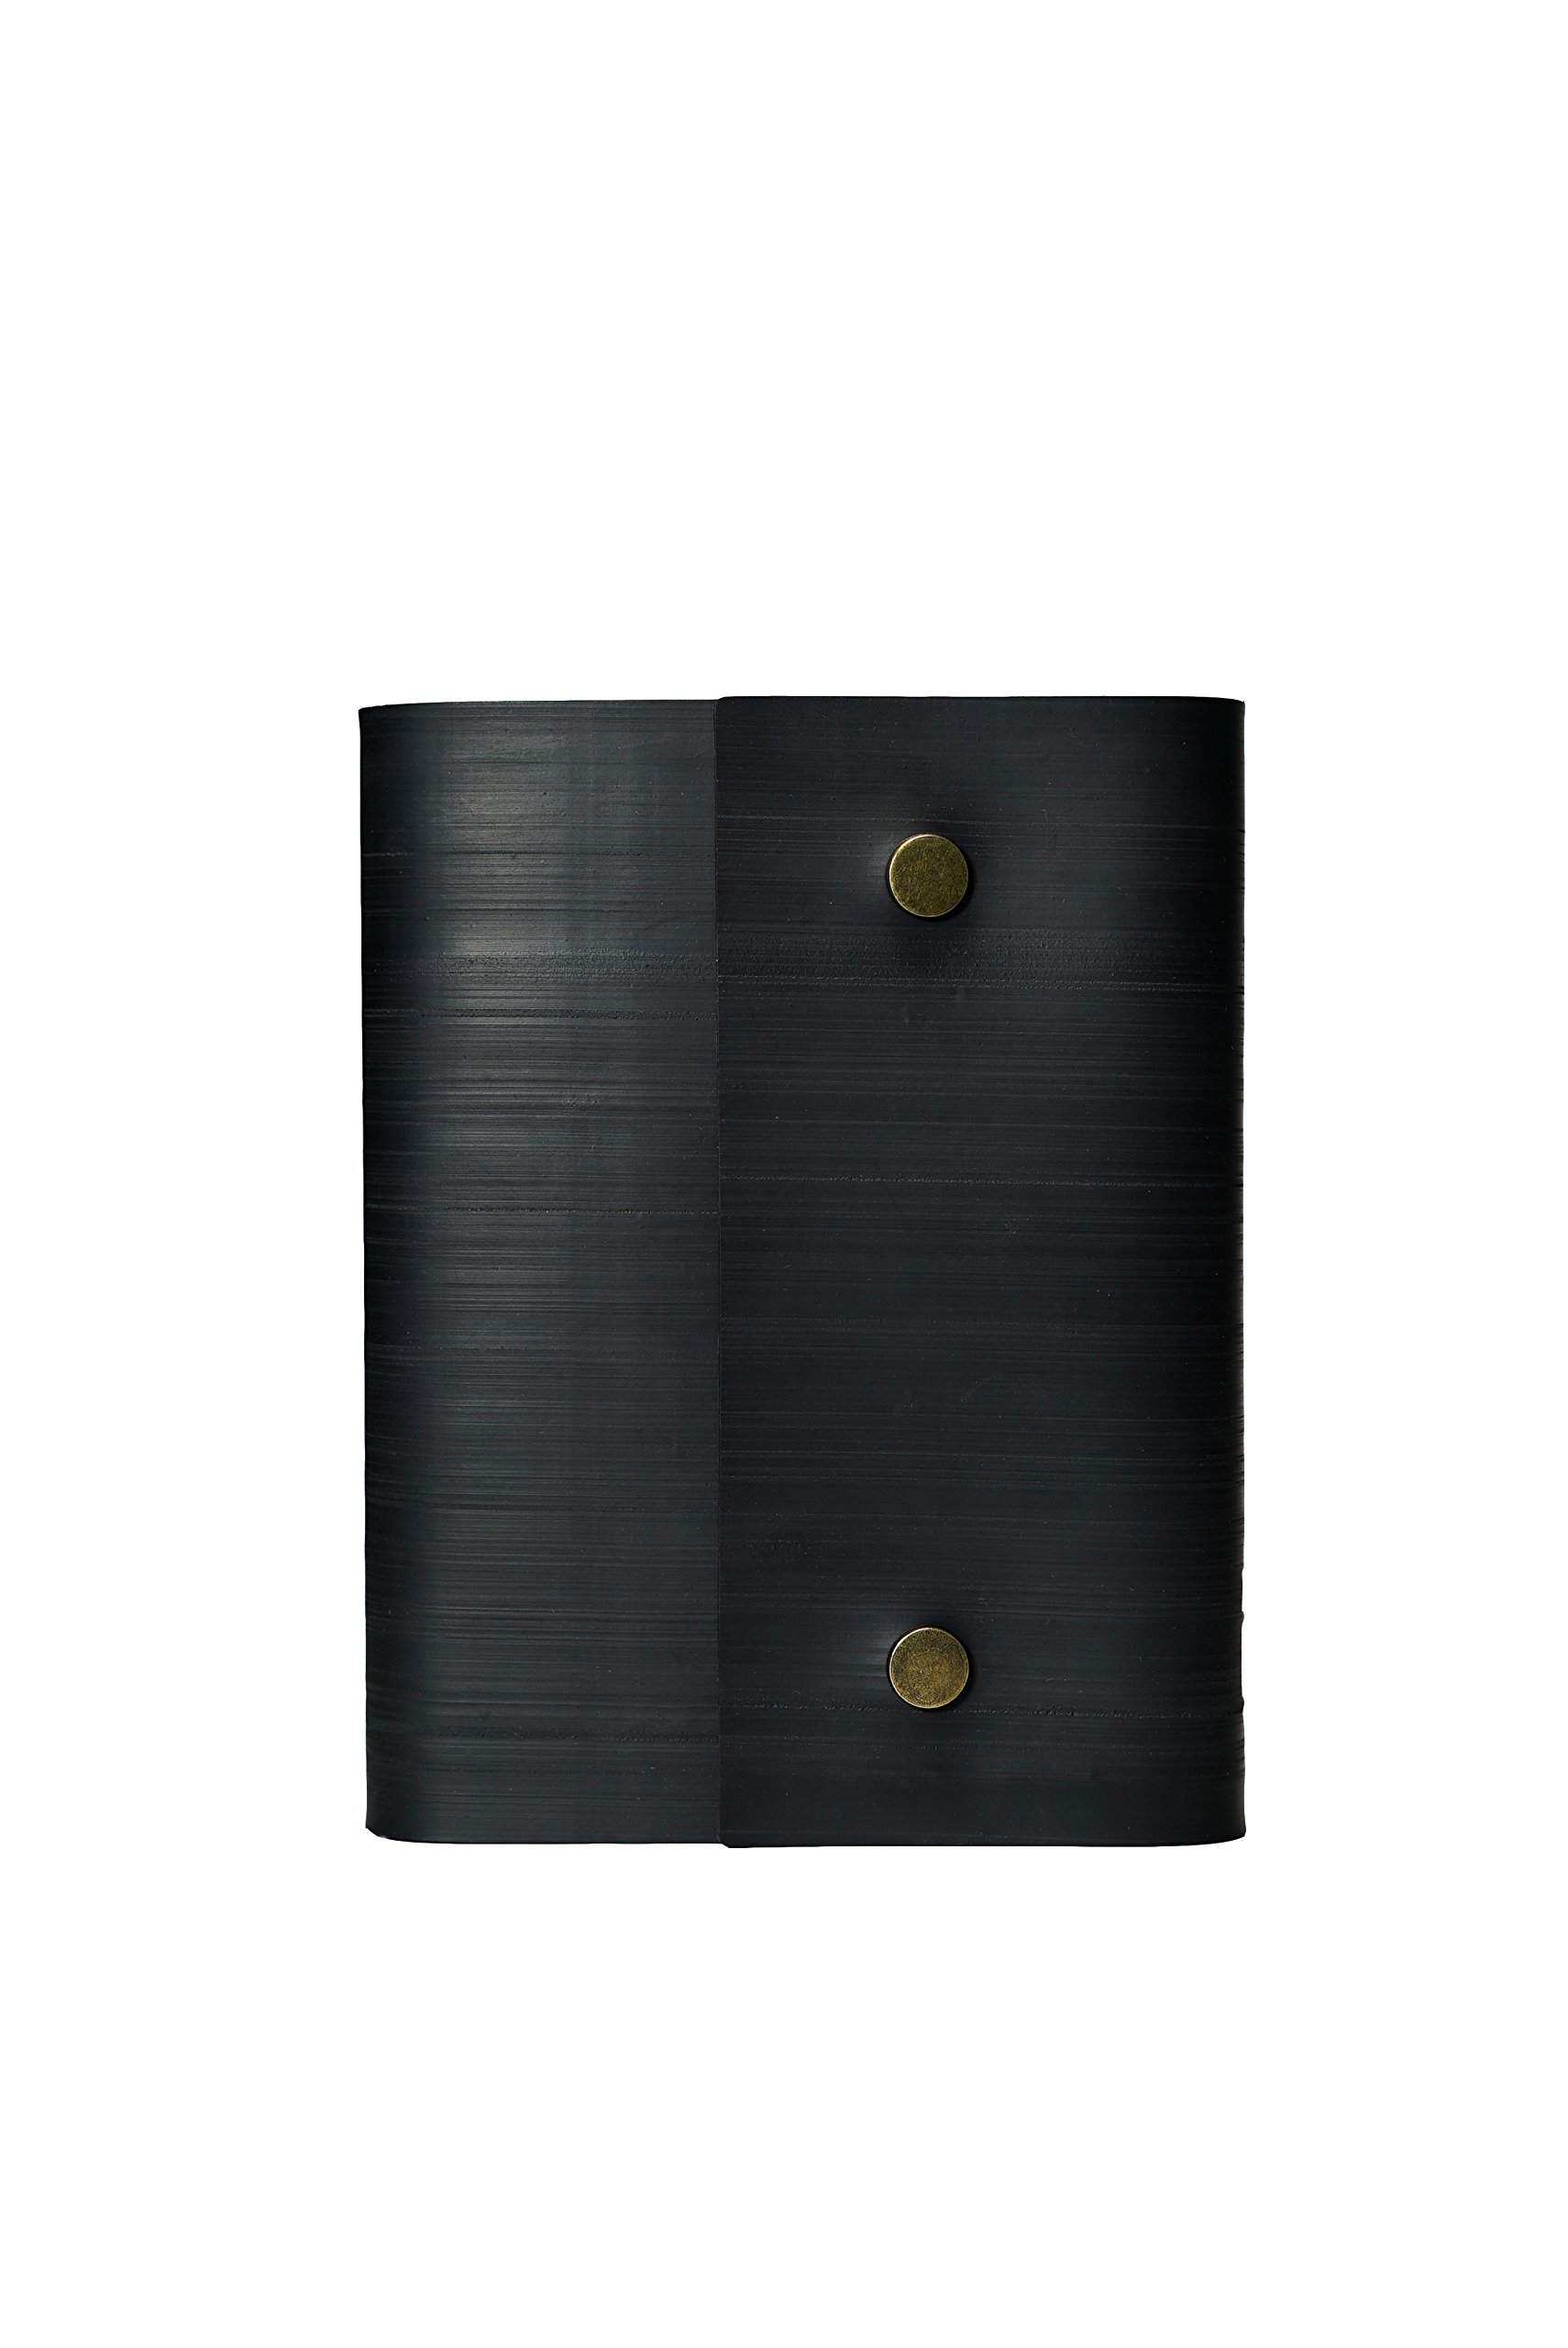 Notebook Journal From Recycled Tires by Streamlet. 100% Environmentally Smart. Handmade with Tire Cover, Vegan Leather Straps, 8x6 Inches, 240 Blank Pages. Compare to Quality Leather BRONZE